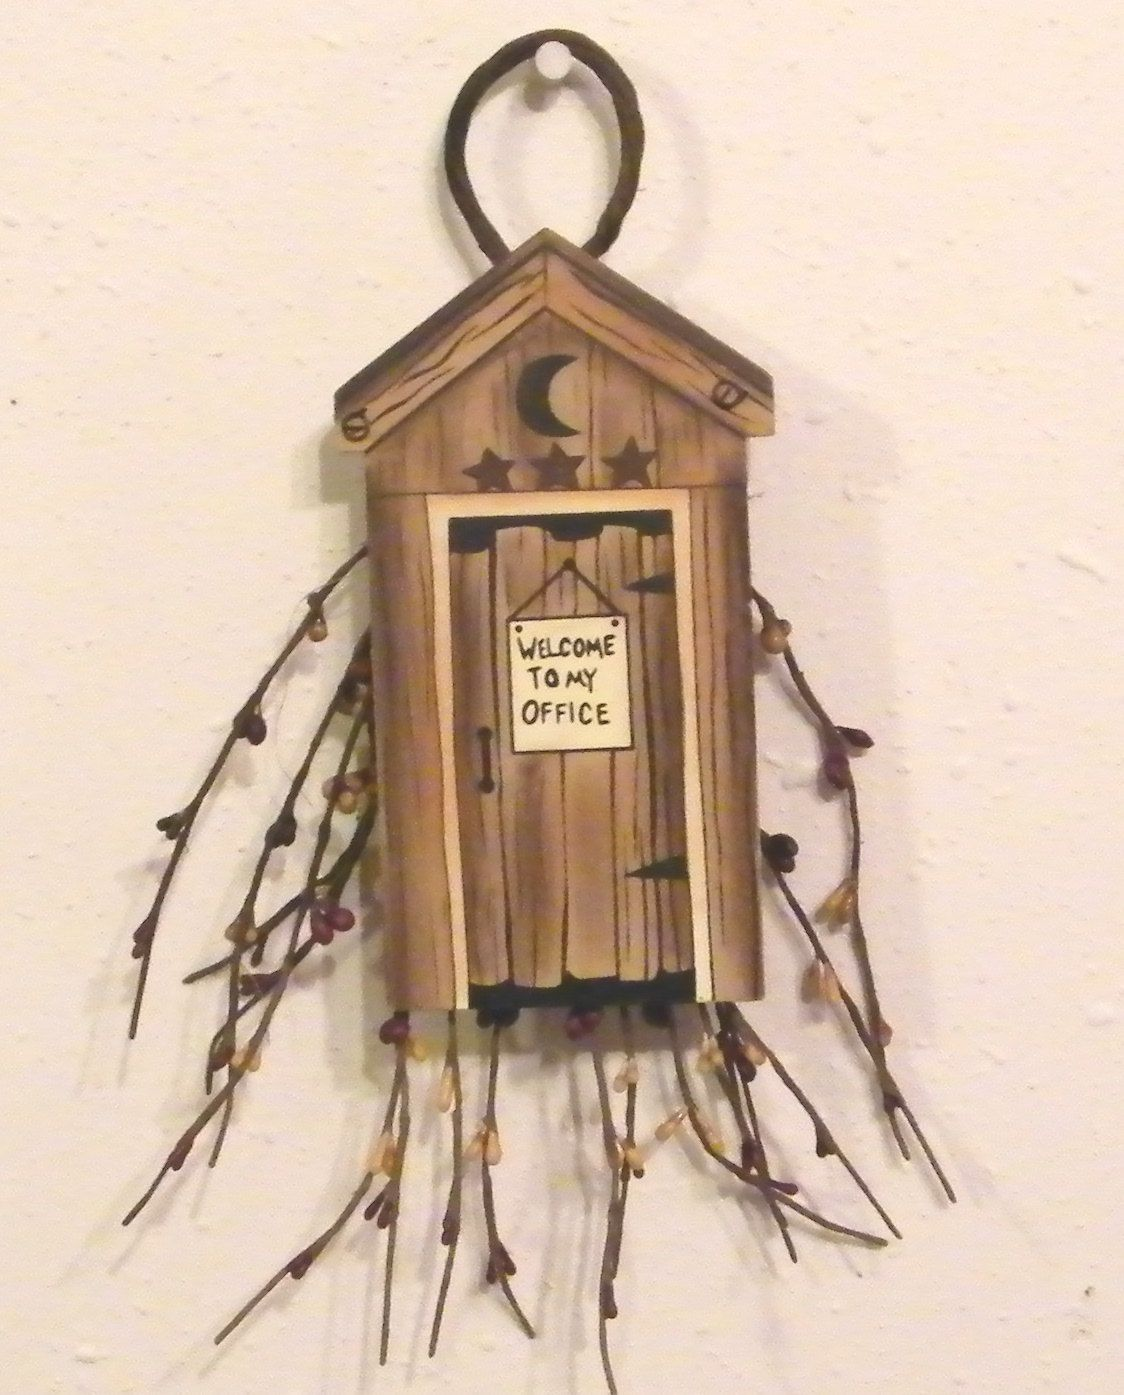 country bathroom decor | images of outhouse bath ornament sign